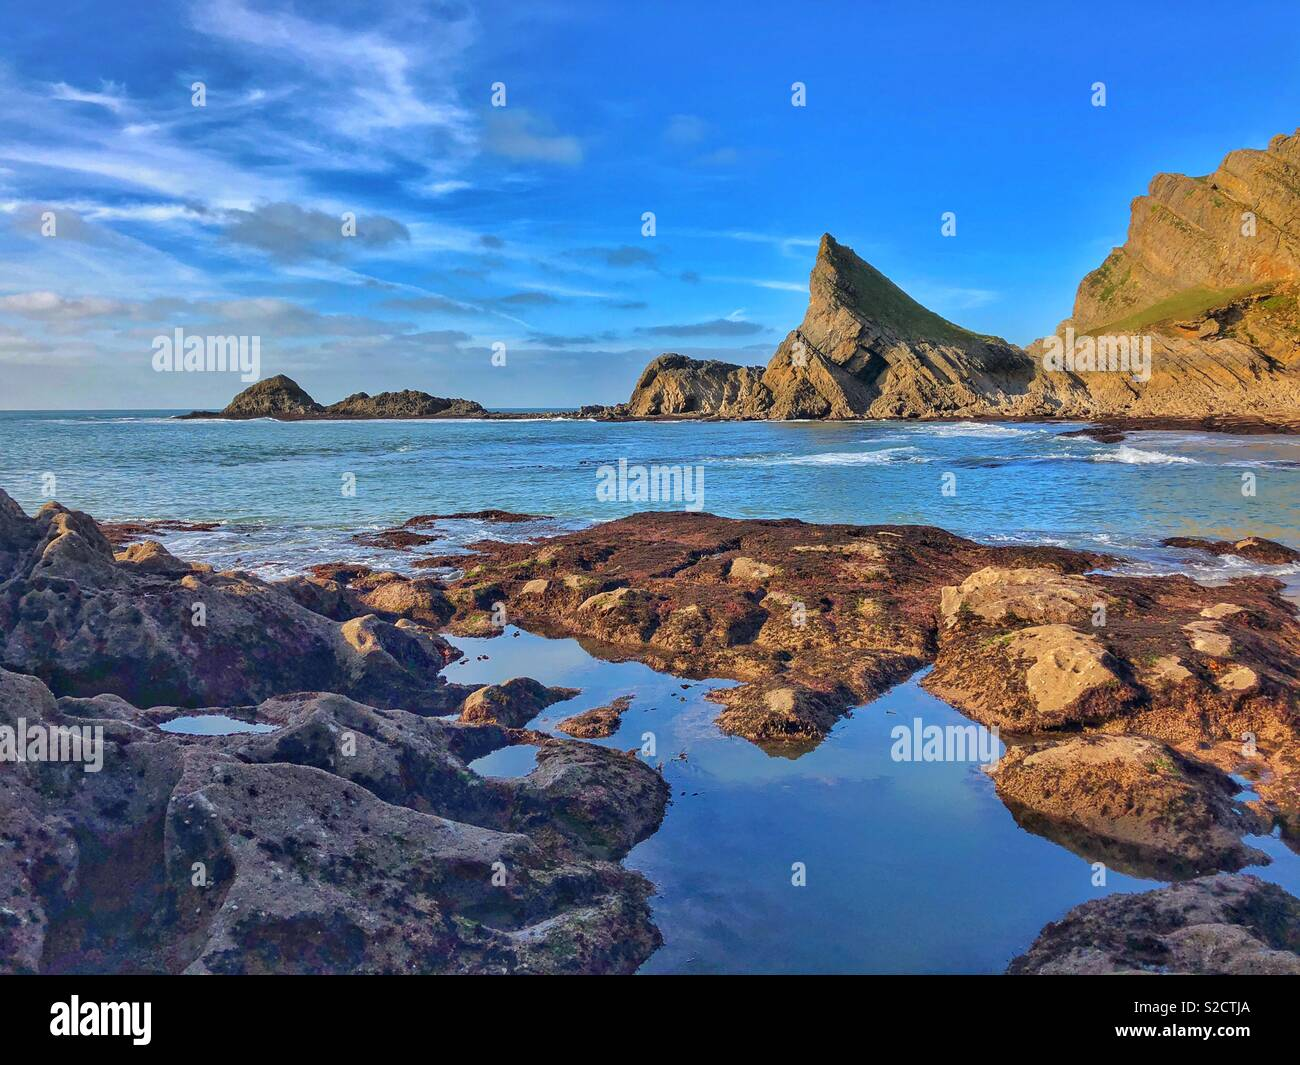 The Knave, South Gower rock feature, Wales, October. - Stock Image